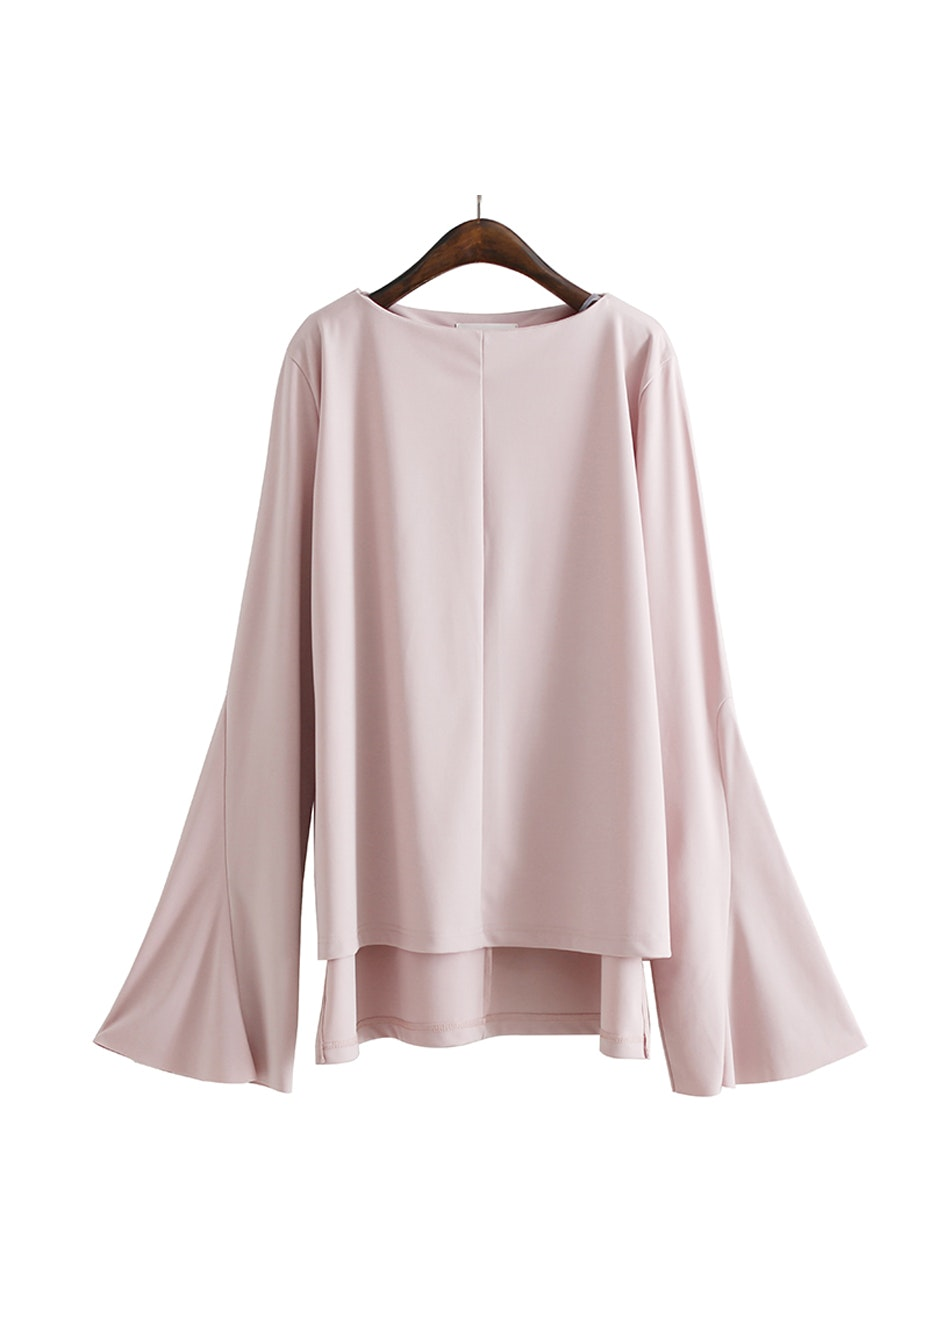 Lolita Flared Sleeve Top - Soft Pink